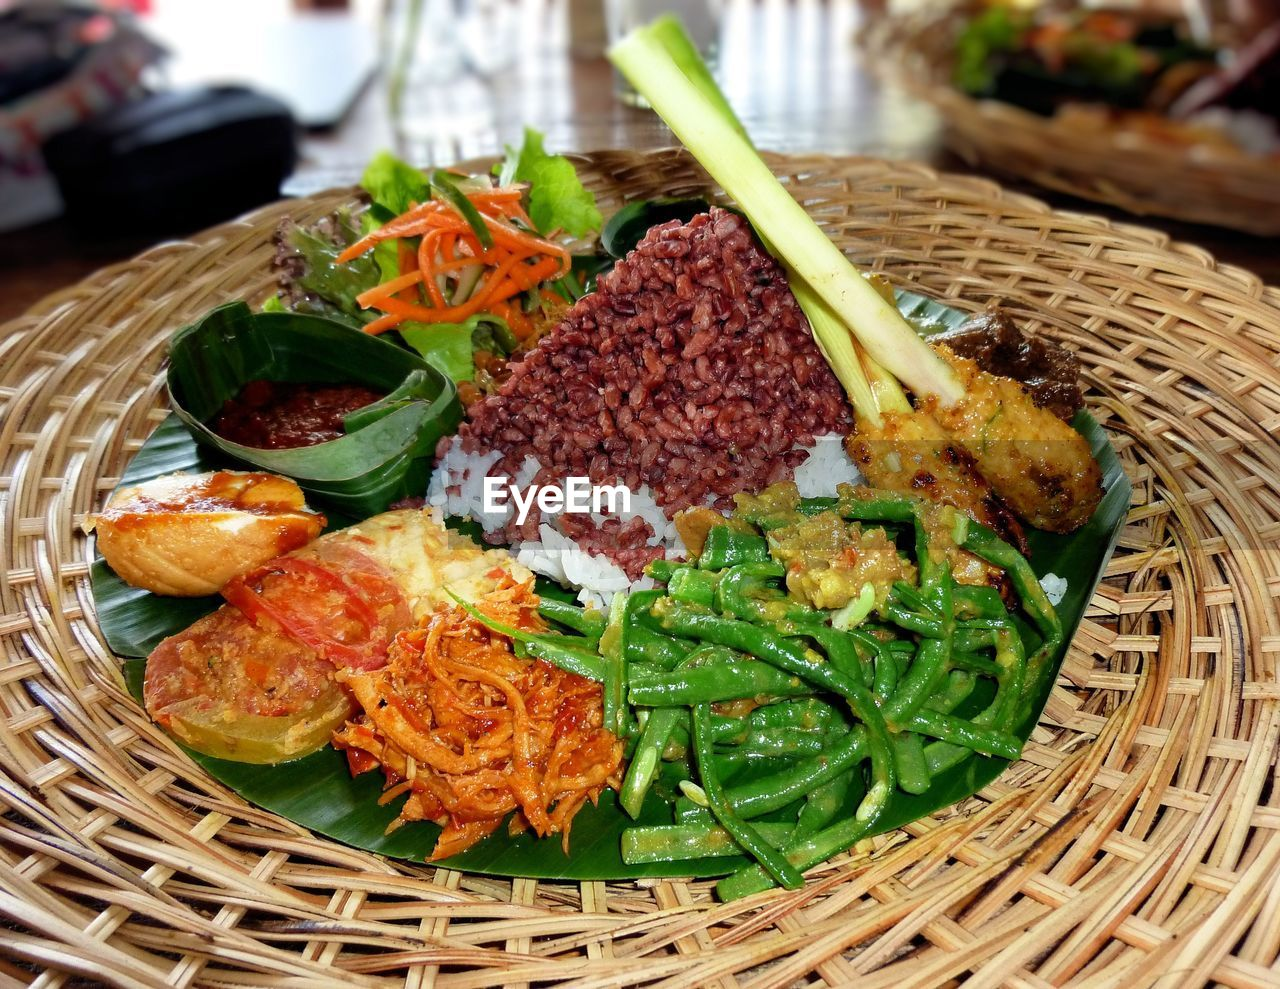 High angle view of food in wicker plate